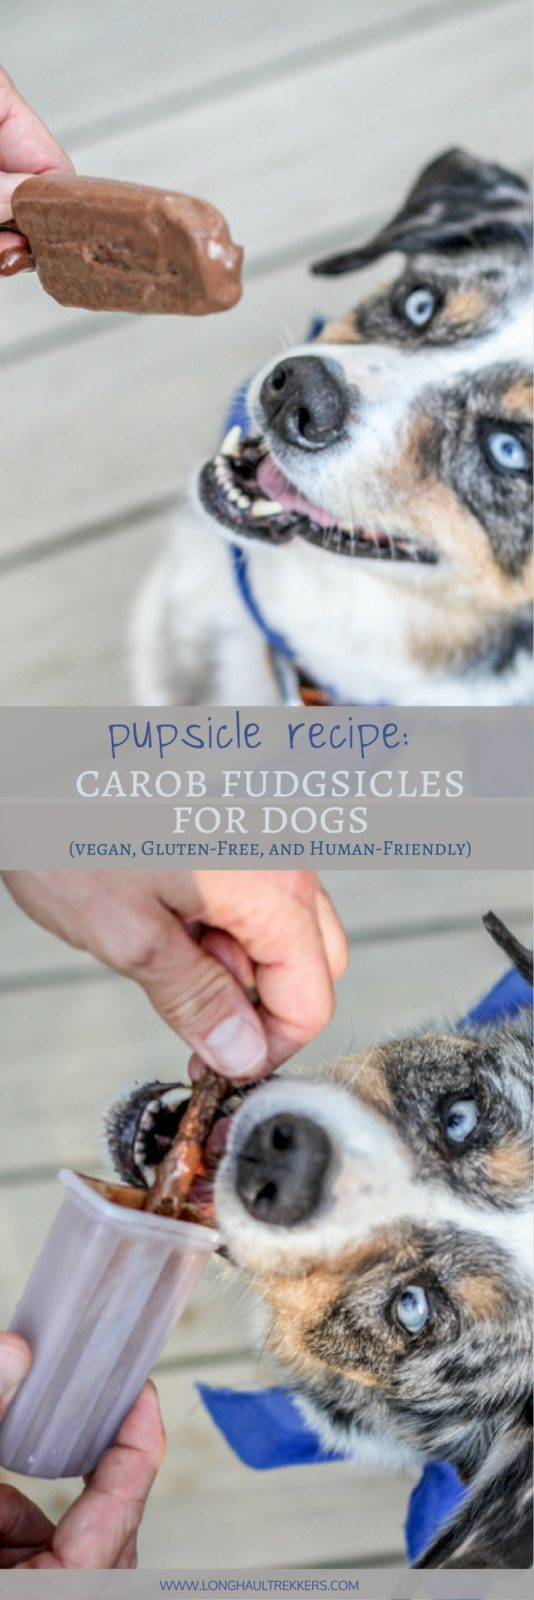 Pupsicle Recipe: Carob Fudgsicles for Dogs